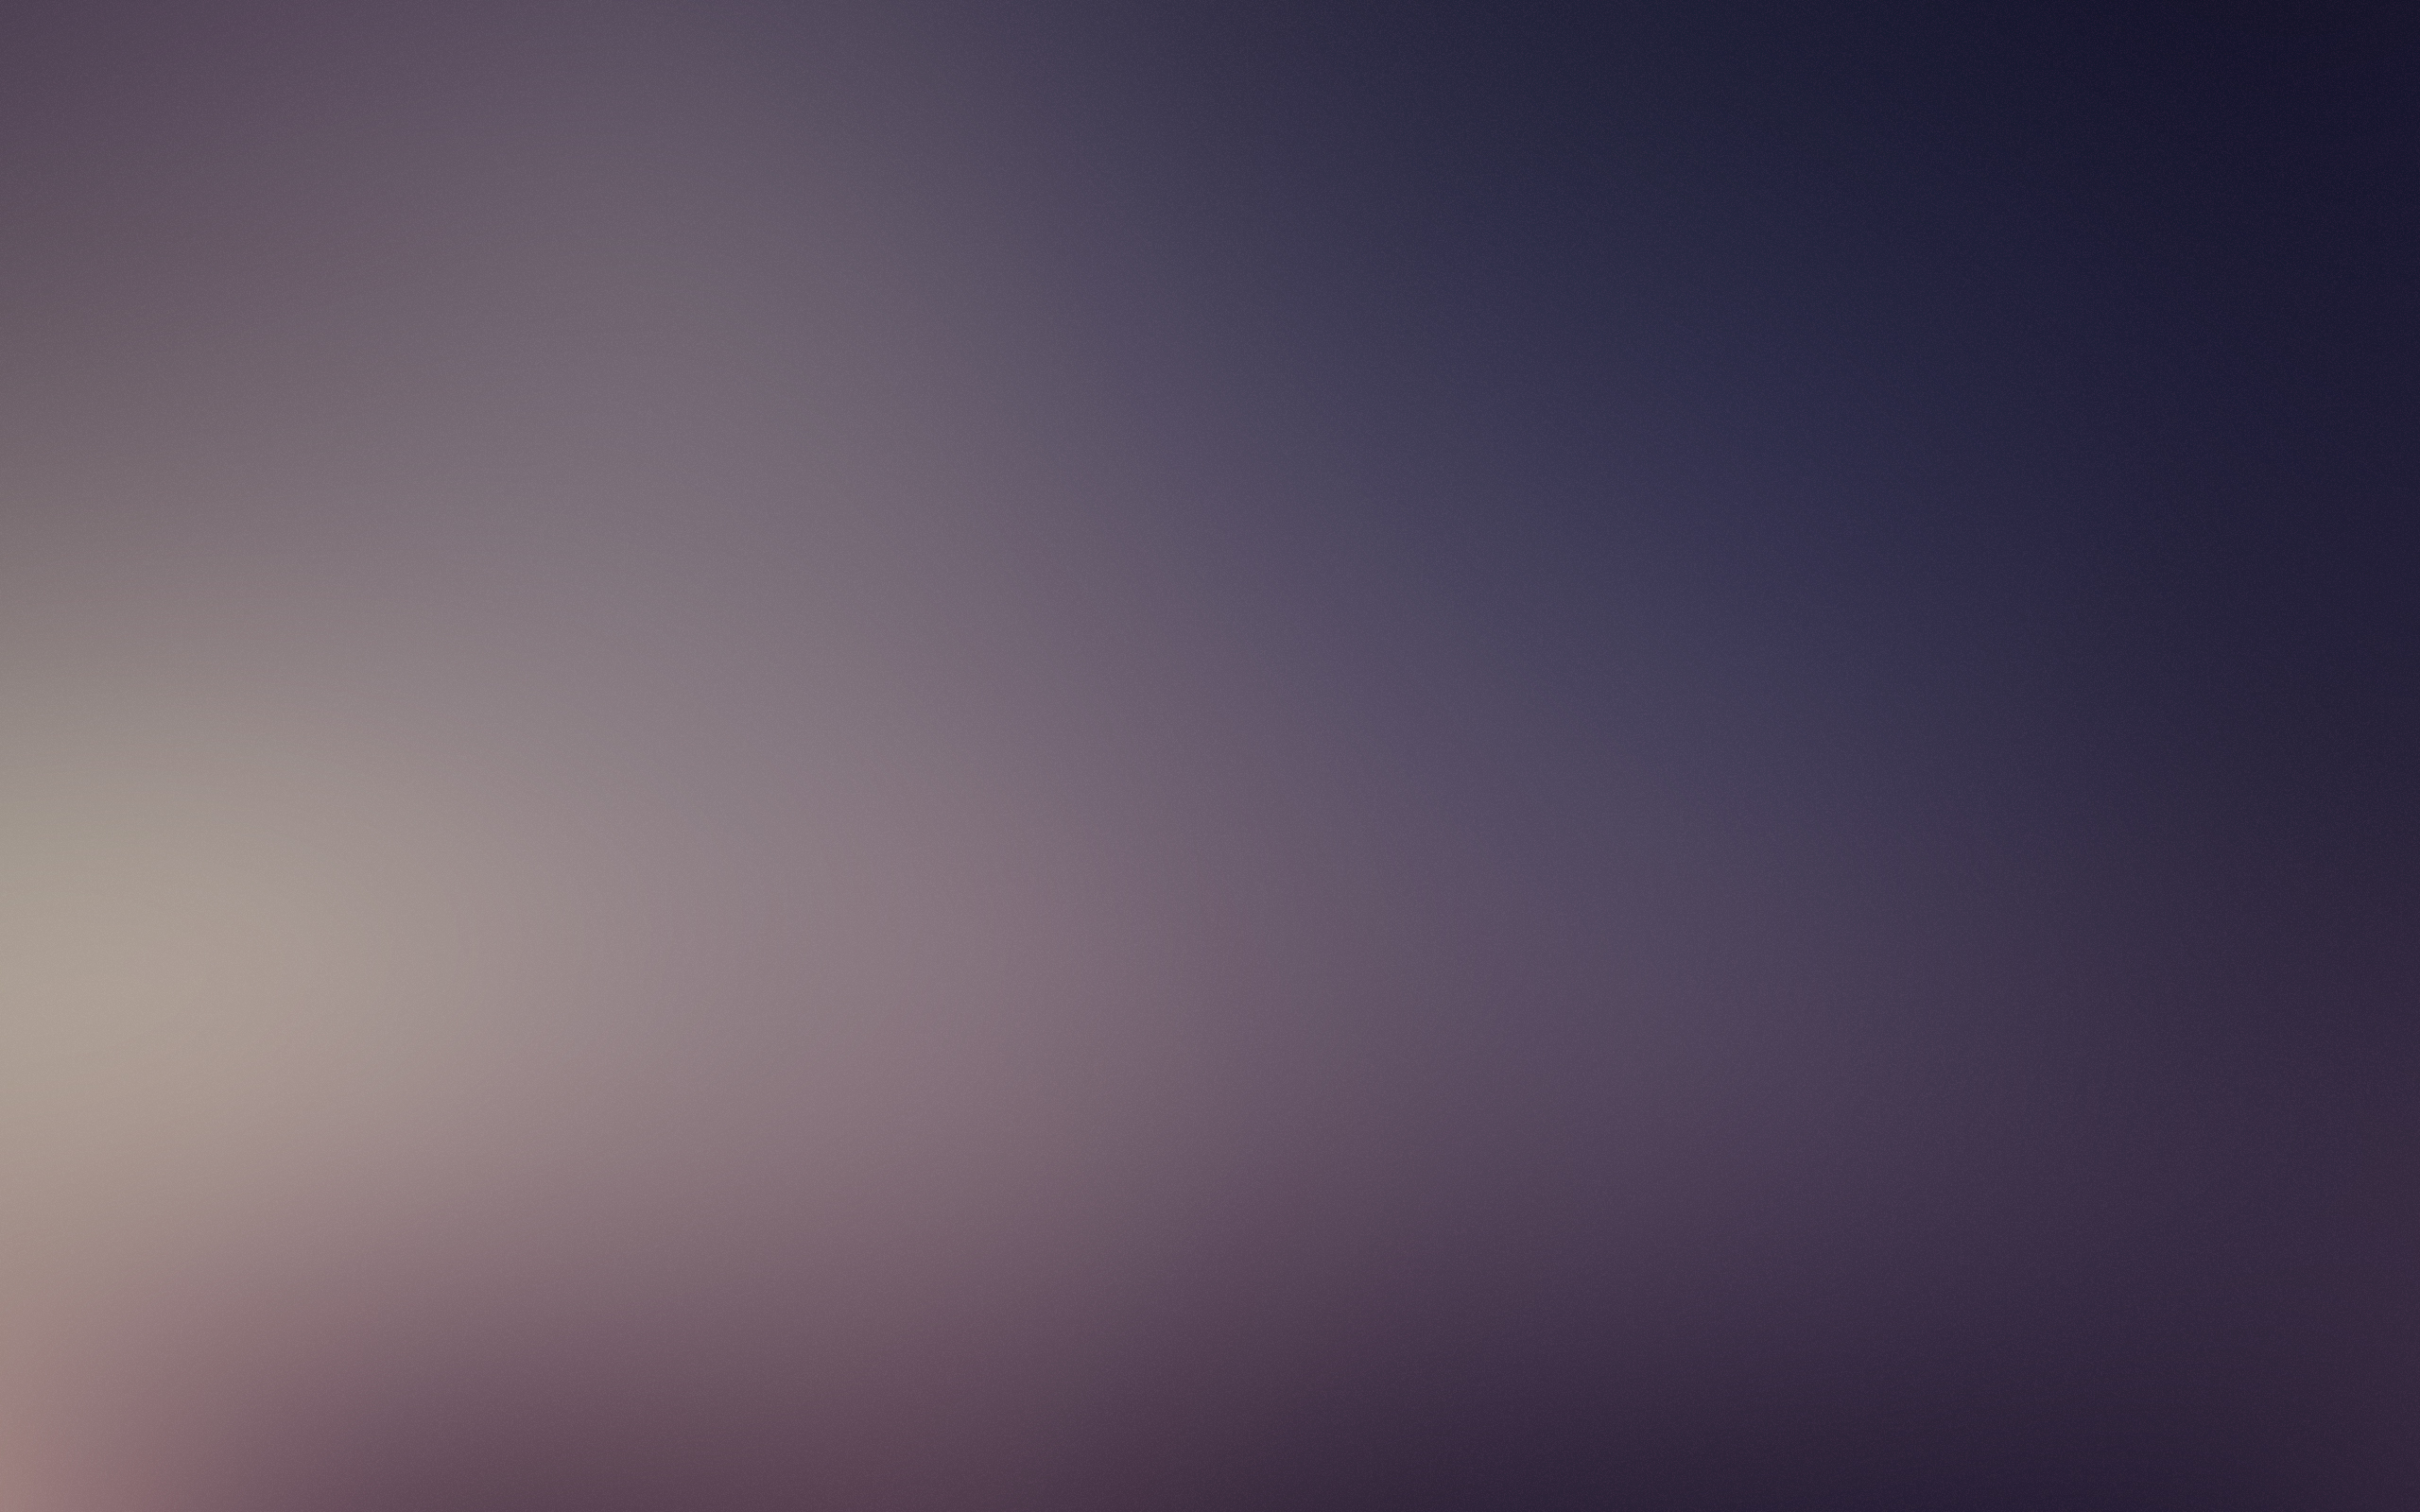 hd wallpapers abstract simple - photo #24